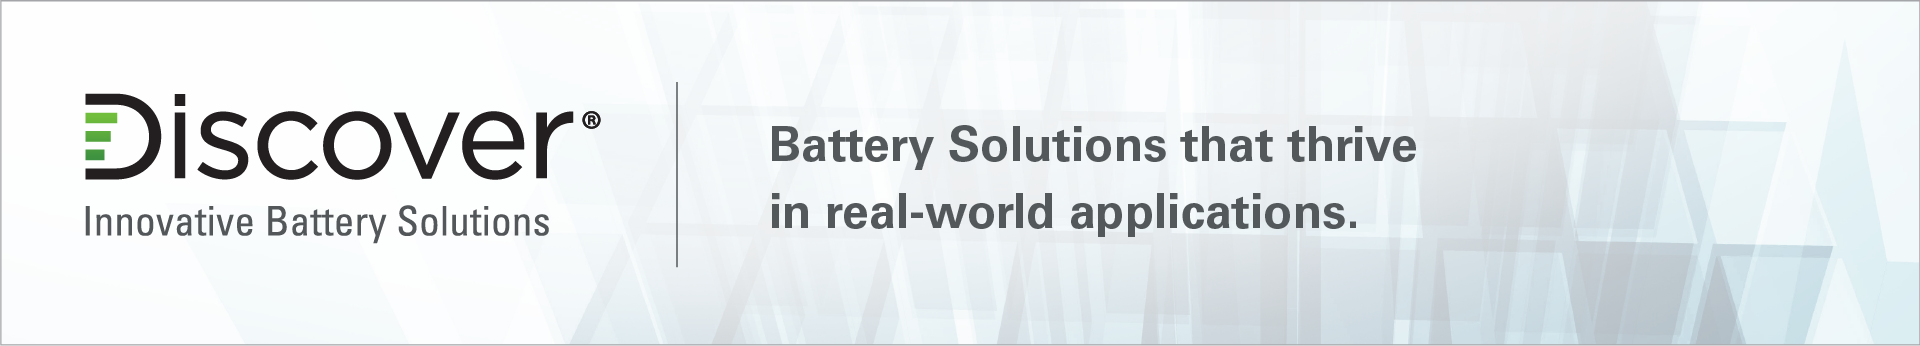 Discover Battery, Battery Solutions that thrive in real-world applications